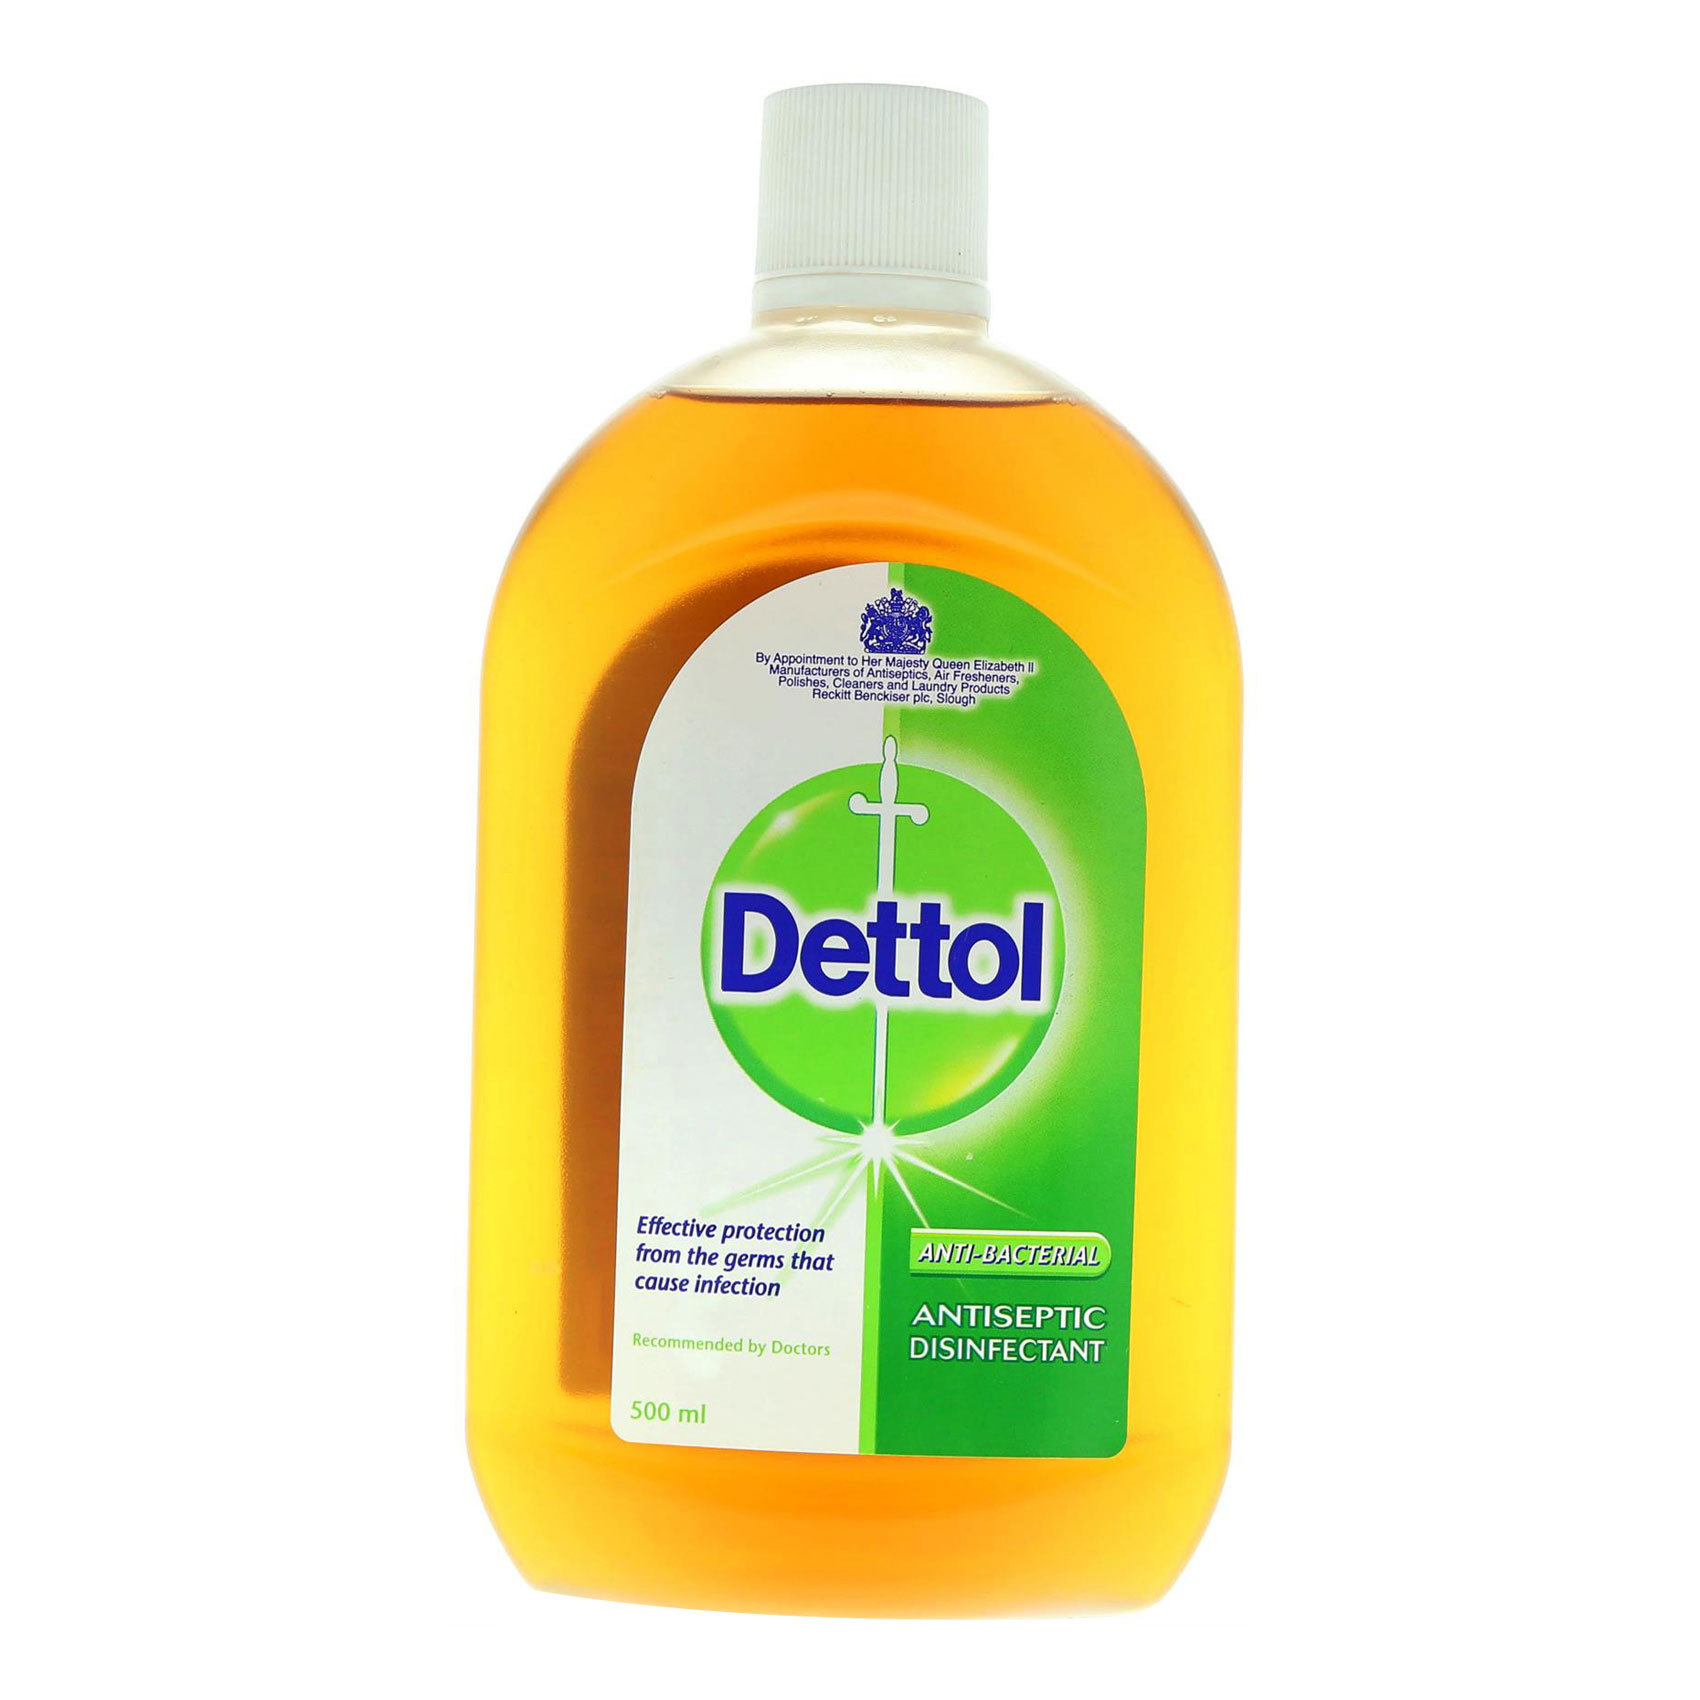 DETTOL ANTISEP/DSIN 500ML